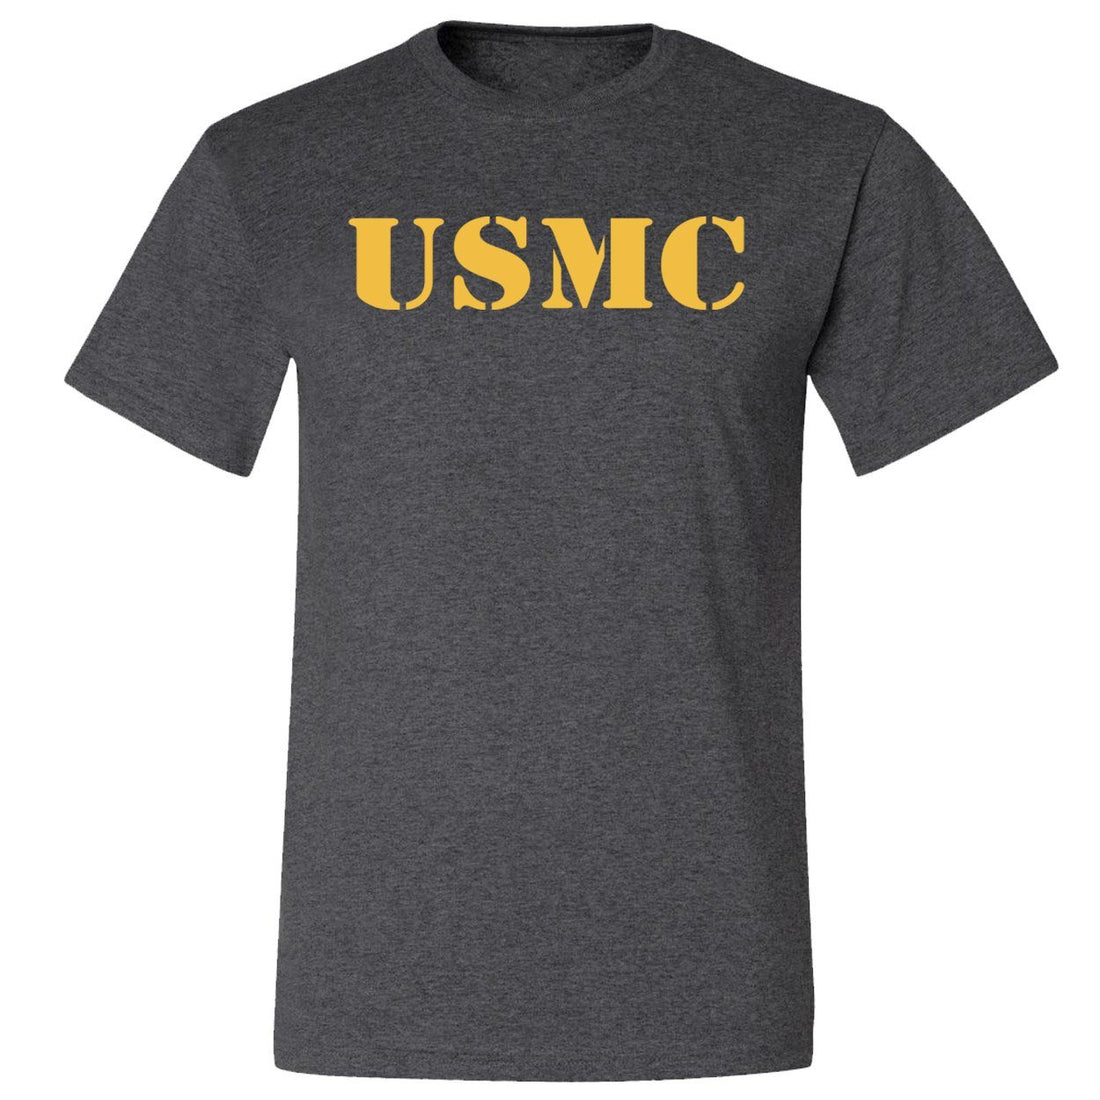 CLOSEOUT Gold USMC BLACK Heather T-Shirt - Marine Corps Direct